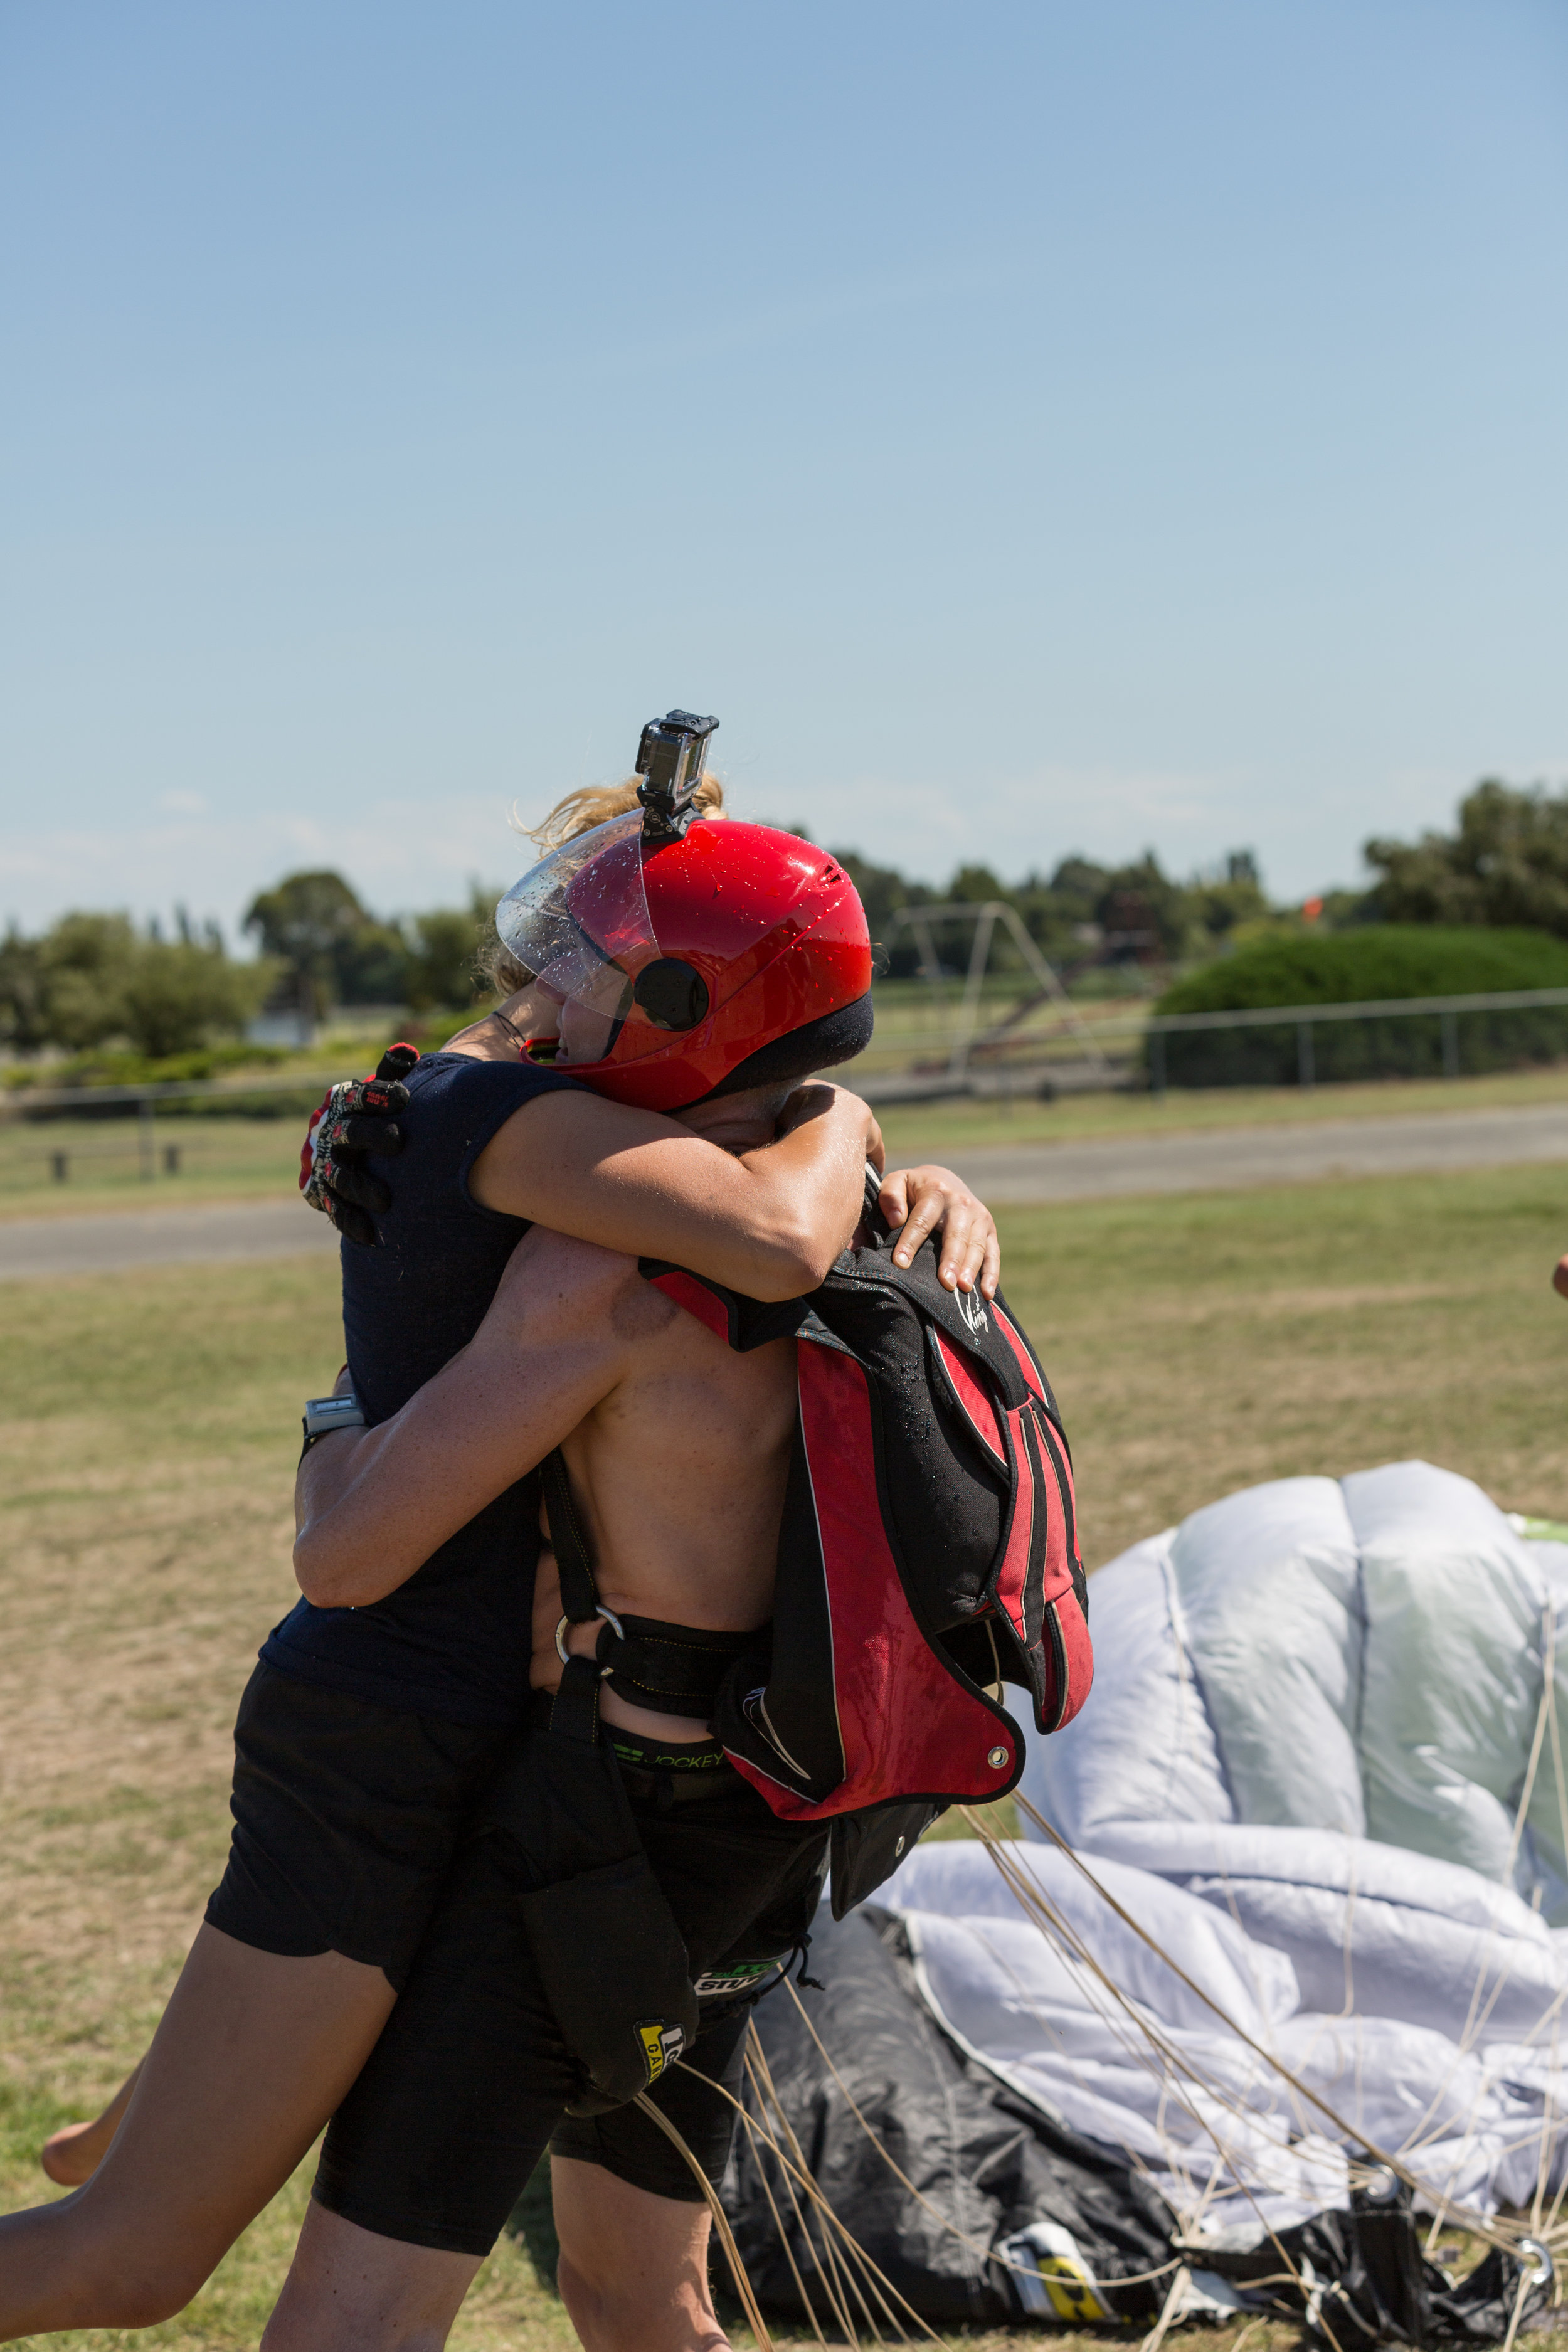 the skydiving kiwis team is a big family